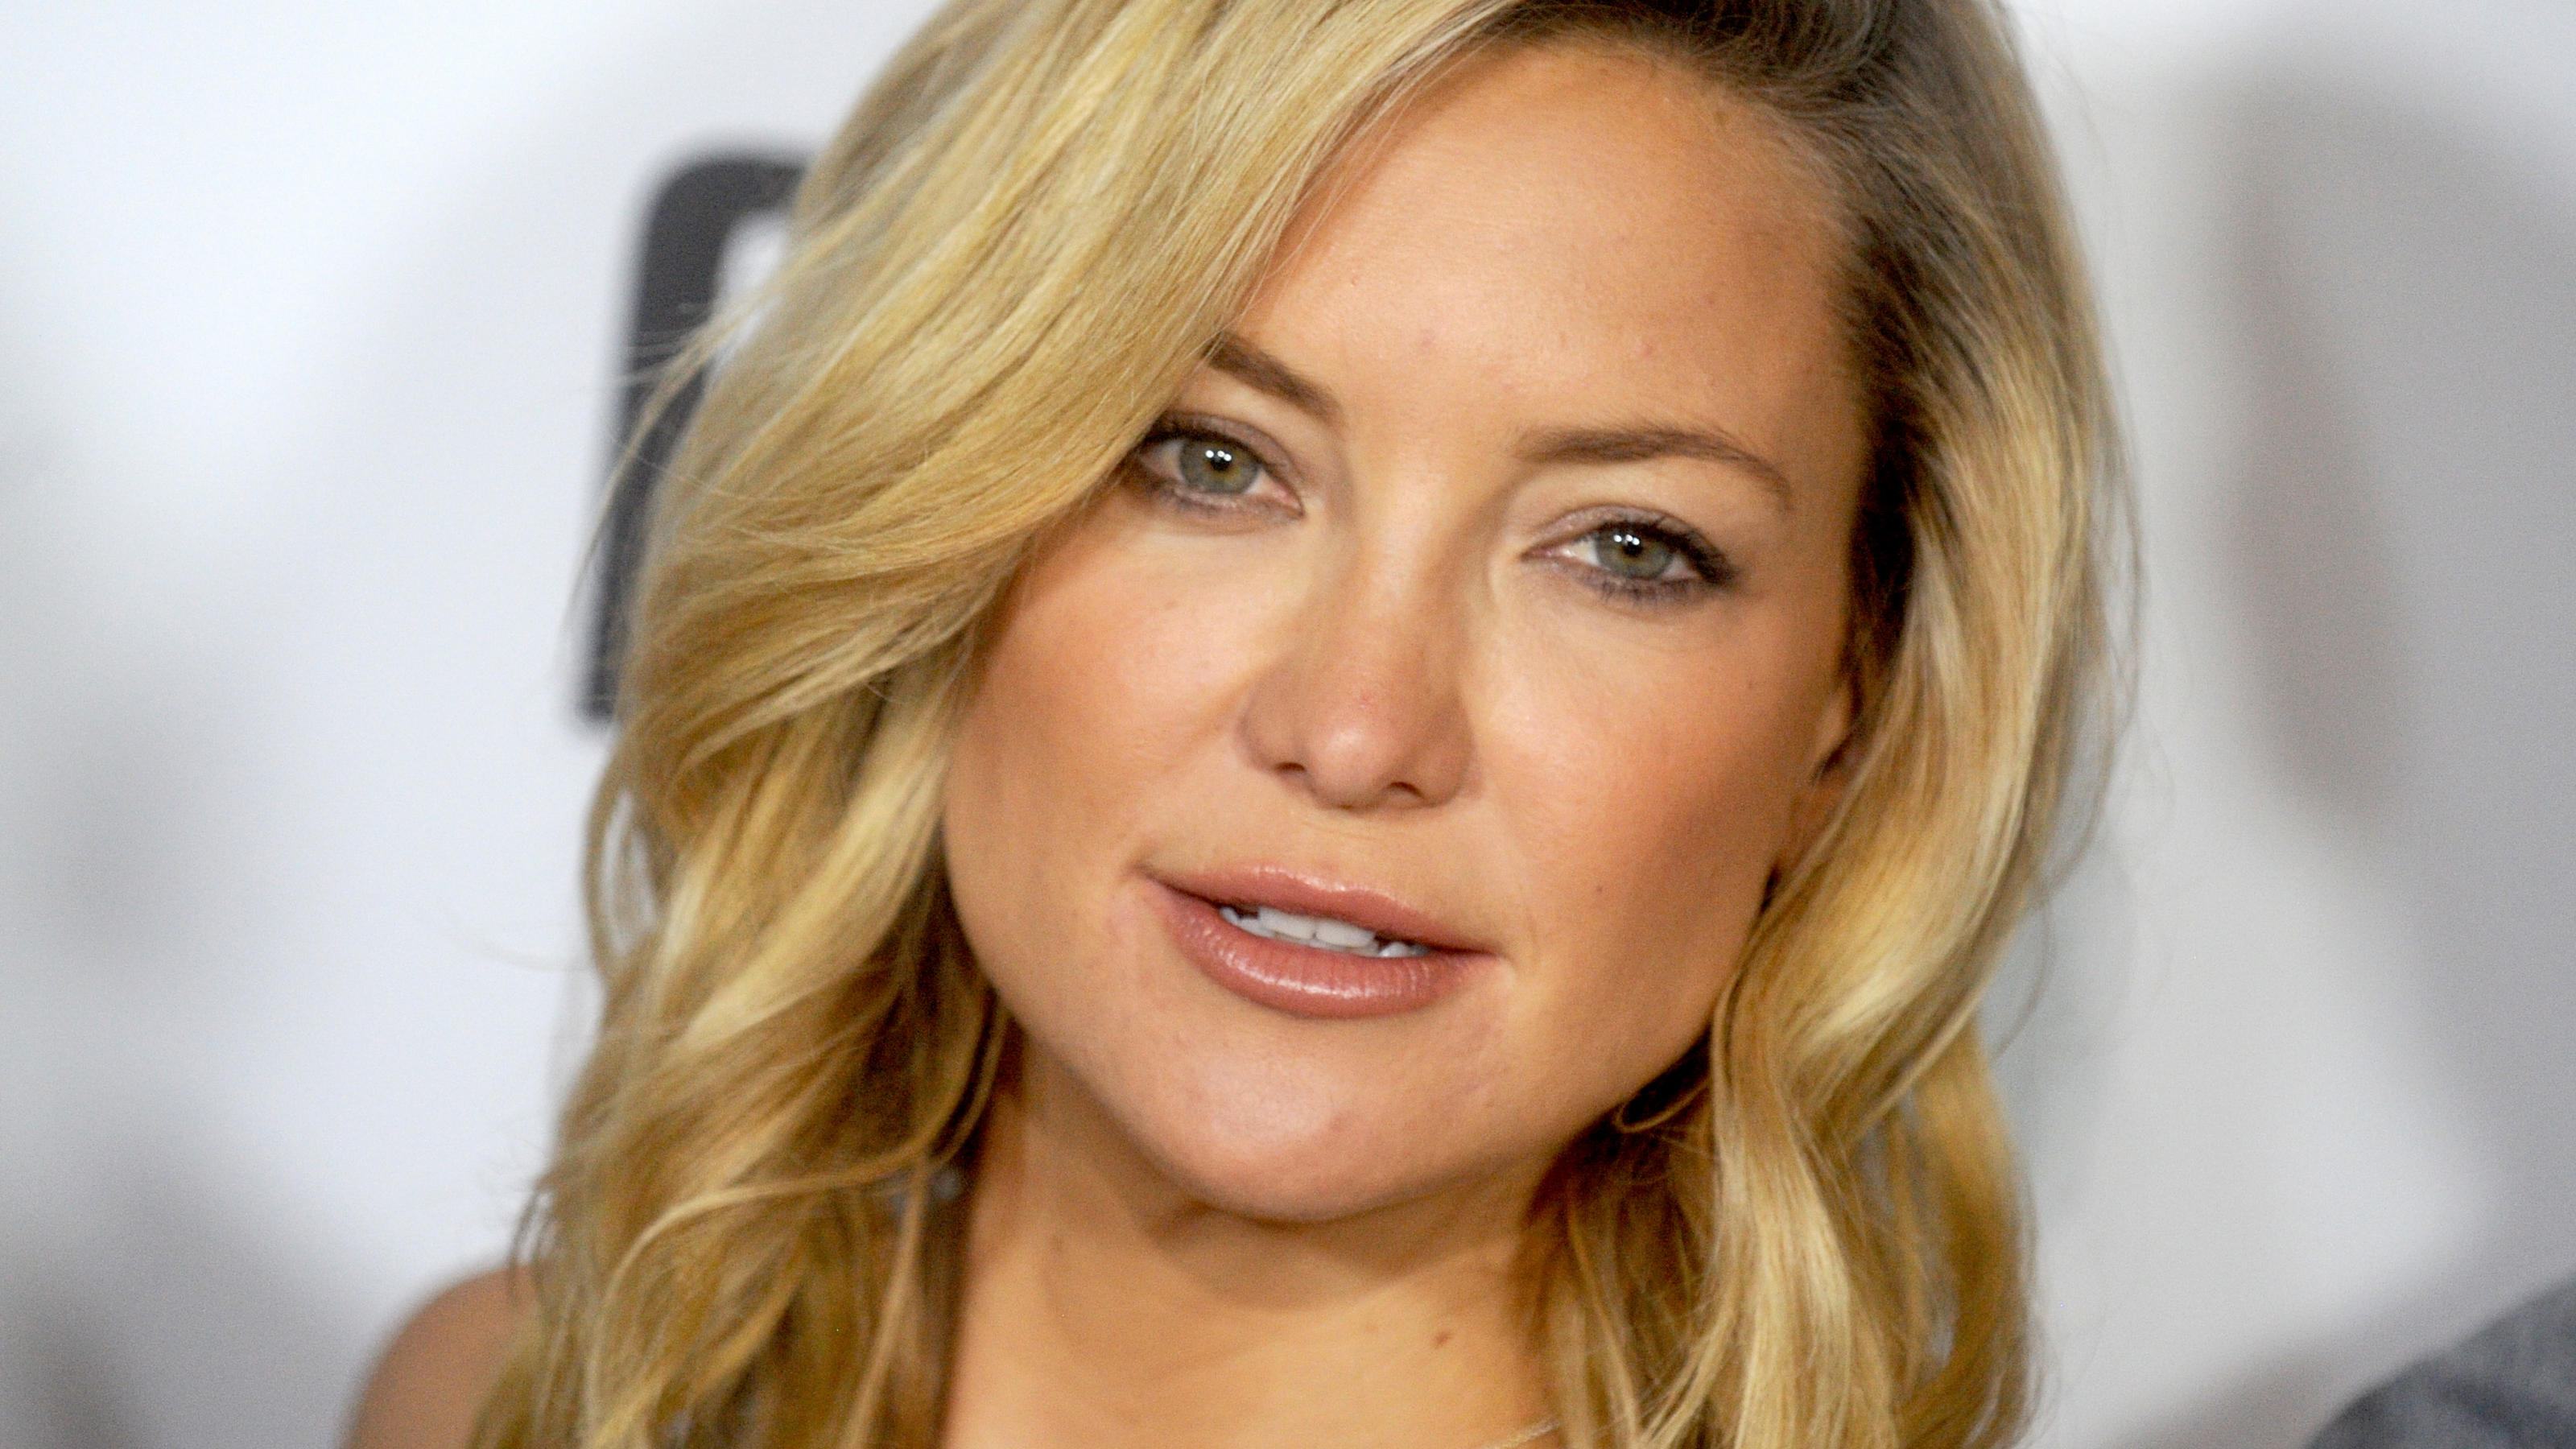 Kate Hudson attends the FL2 Launch in New York on June 4, 2015. Photo by Dennis Van Tine/ABACAUSA.COM